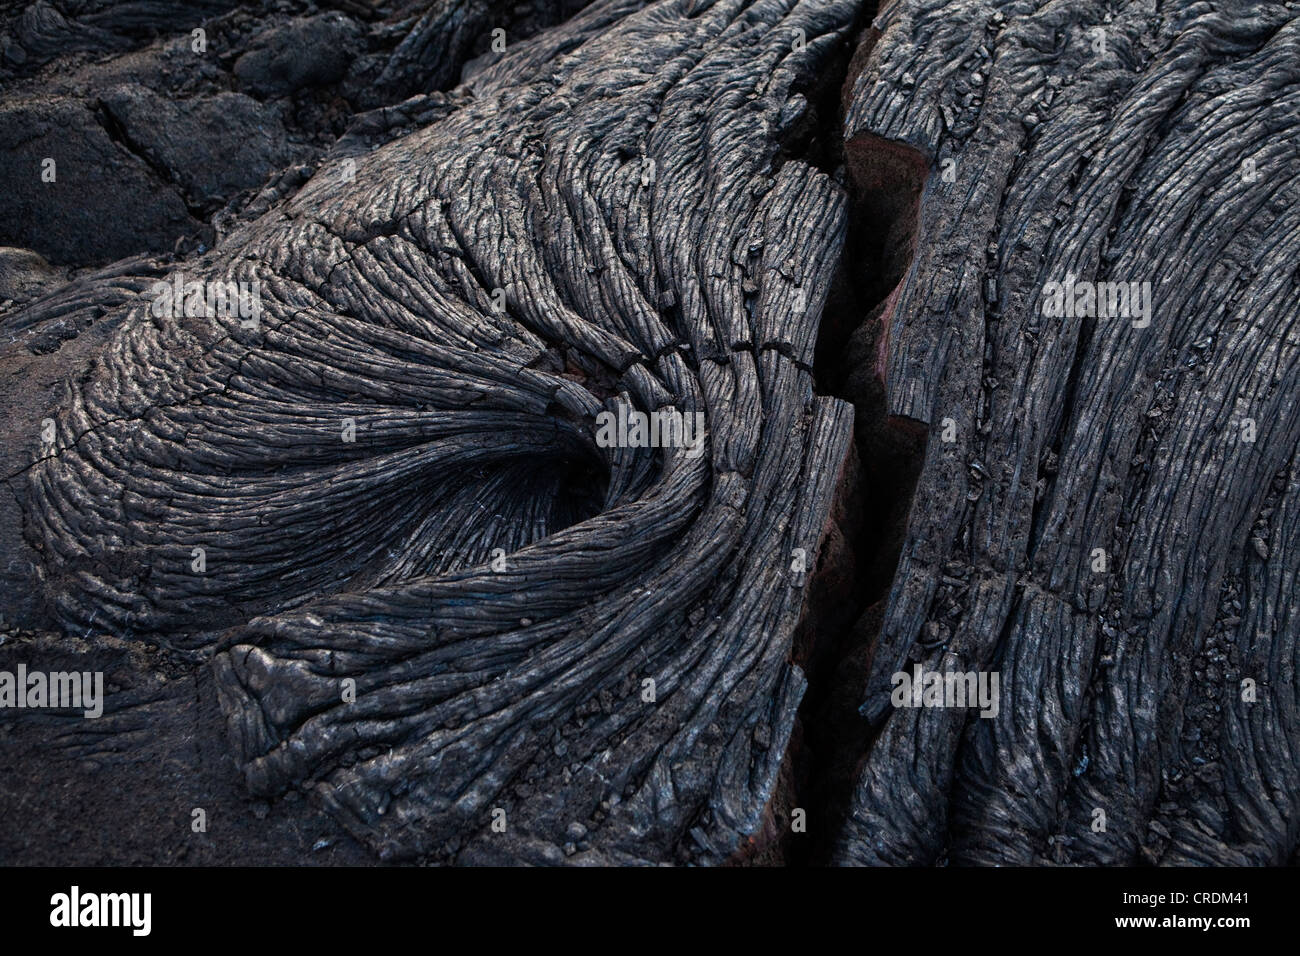 Solidified ropy pahoehoe type lava in Hawai'i Volcanoes National Park, Hawai'i, USA - Stock Image